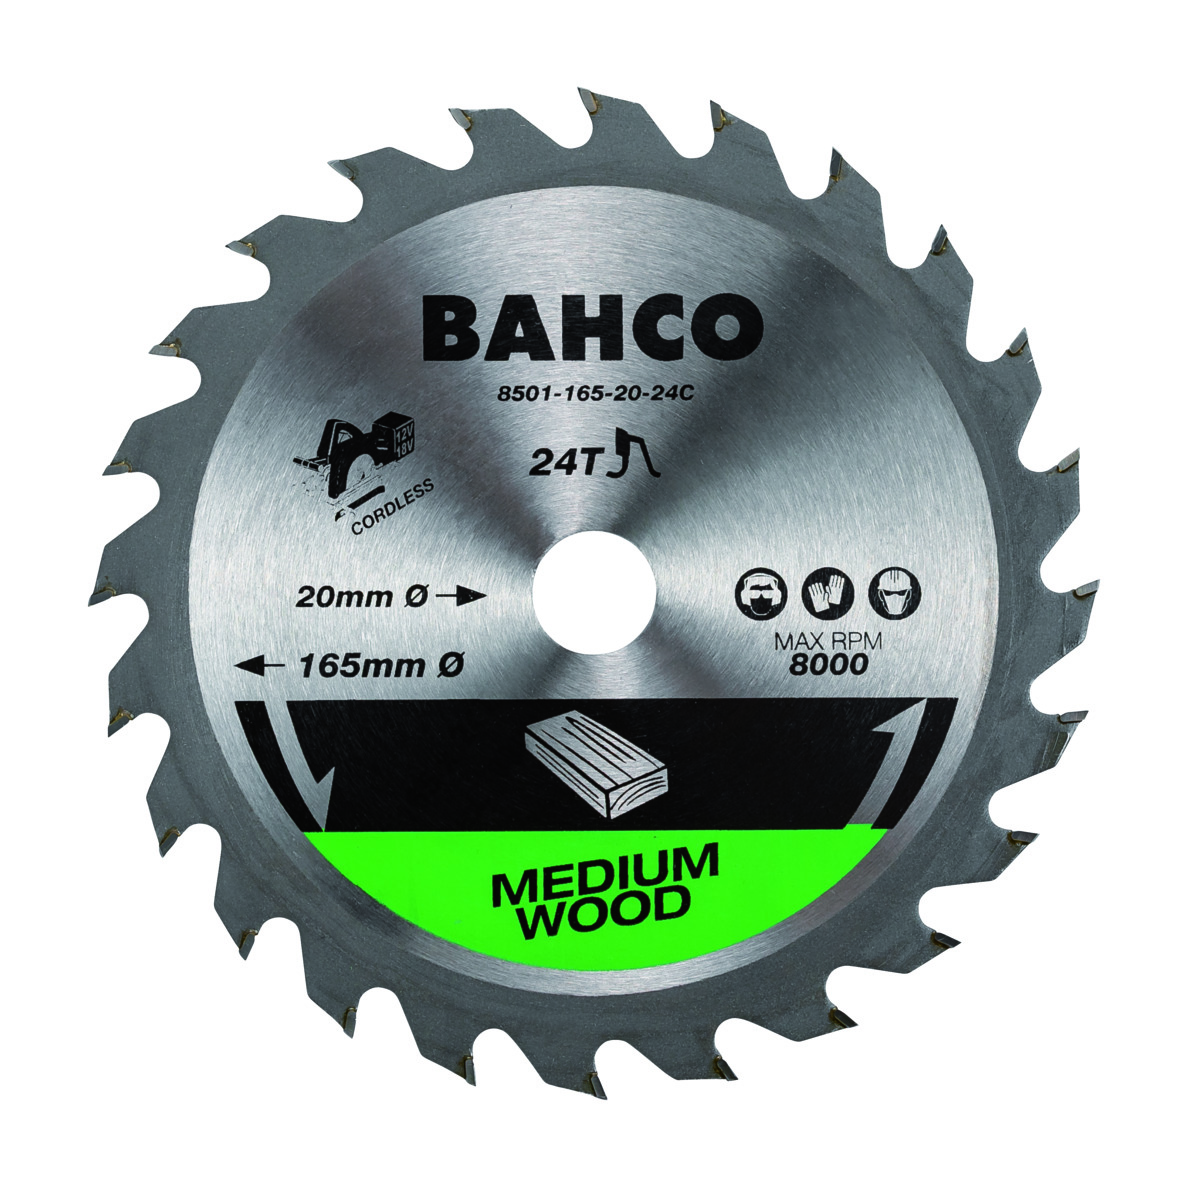 Circular saw blade for cordless saw machines 160x16/20mm 24T for wood